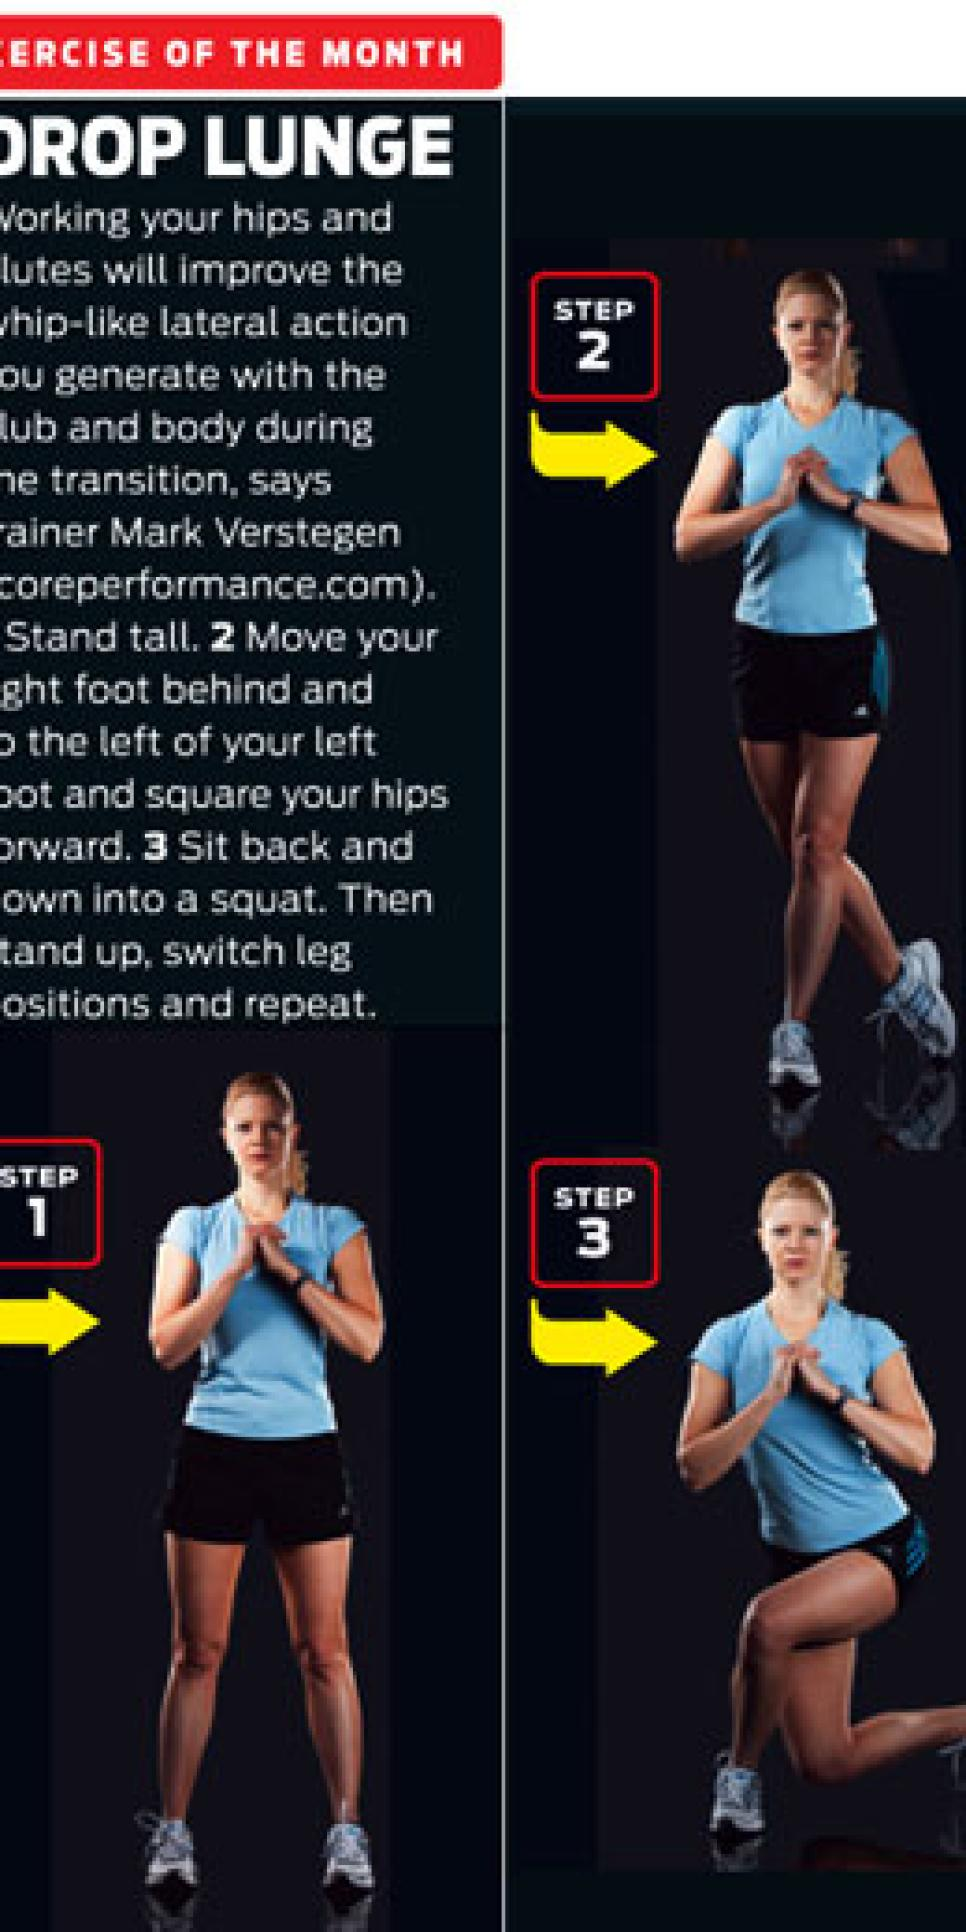 magazine-2012-01-maar02_fitness_pain_management.jpg